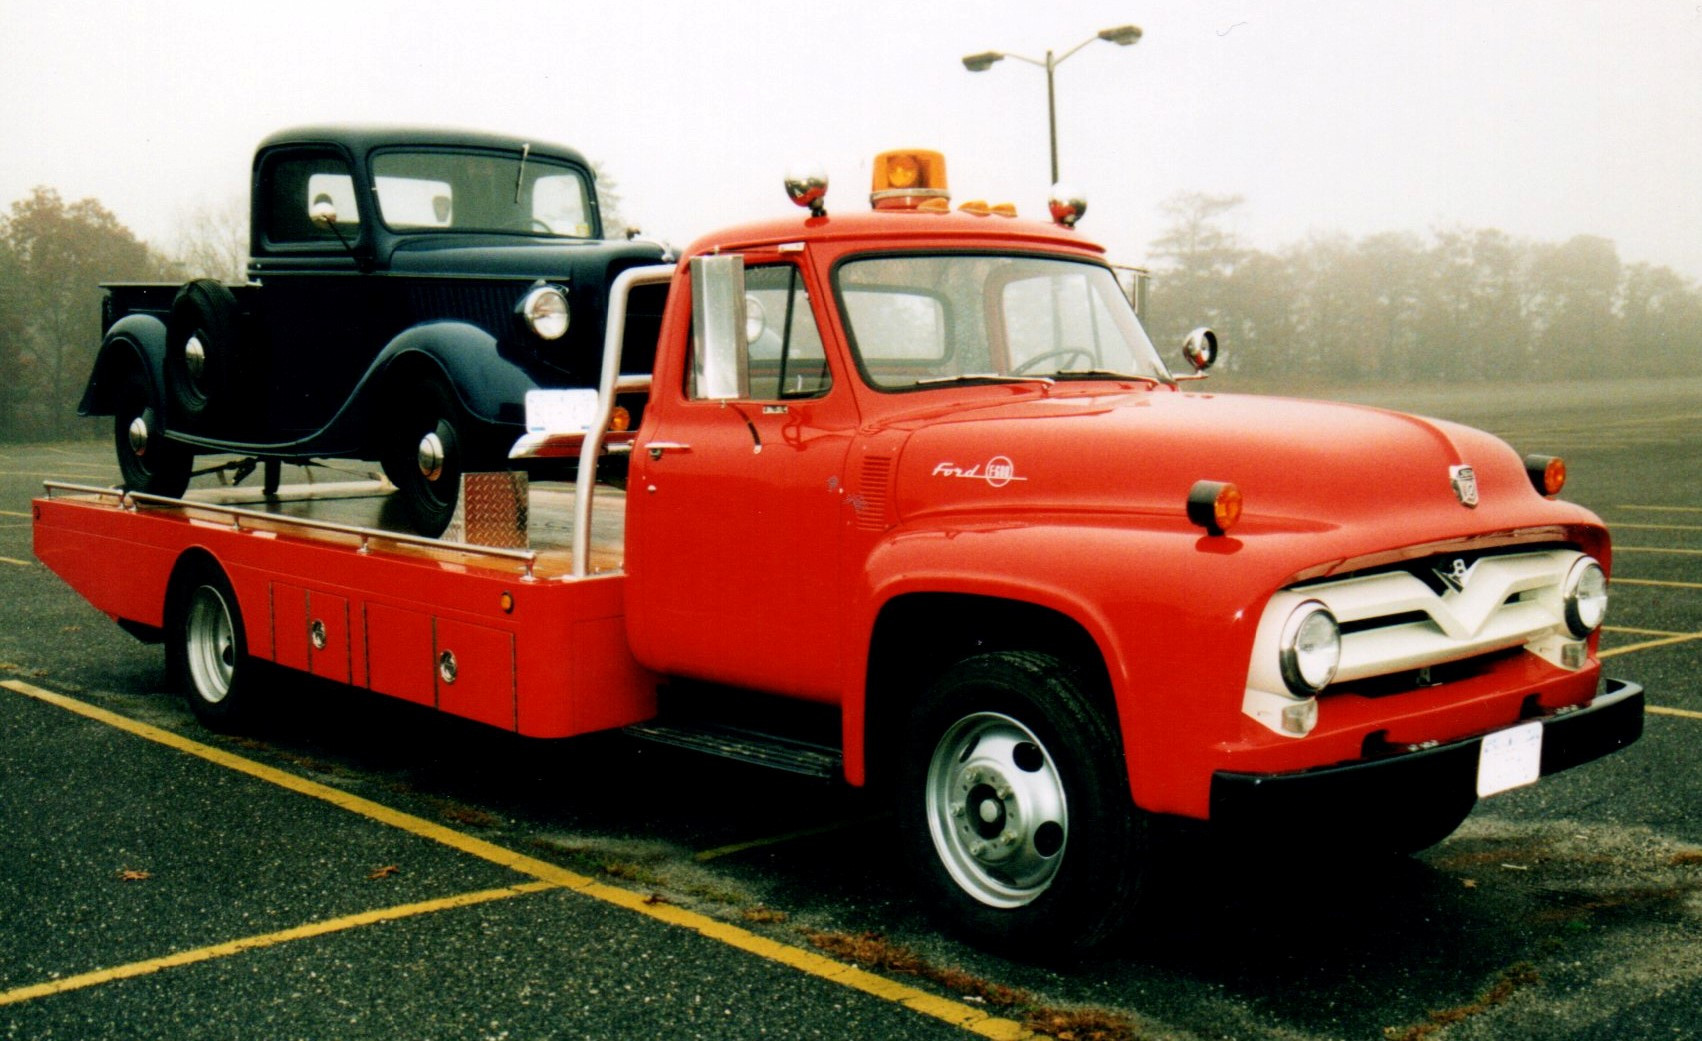 Floyd Chivvis' 1936 Ford pickup & 1955 Ford flatbed